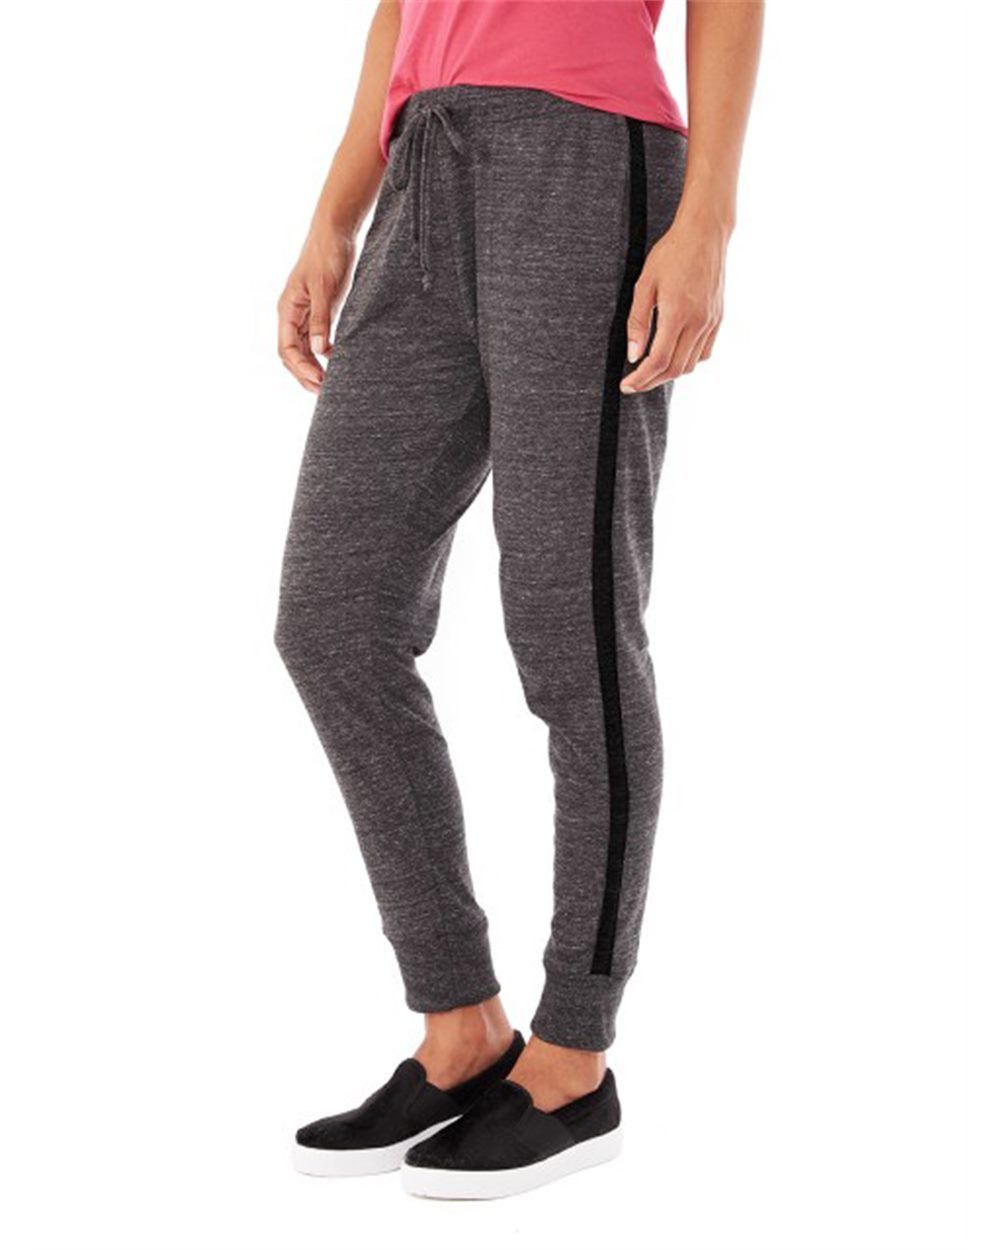 704ebaa7a 2822 Alternative - Women's Eco-Jersey Jogger Pant | Pollero Good Clothes